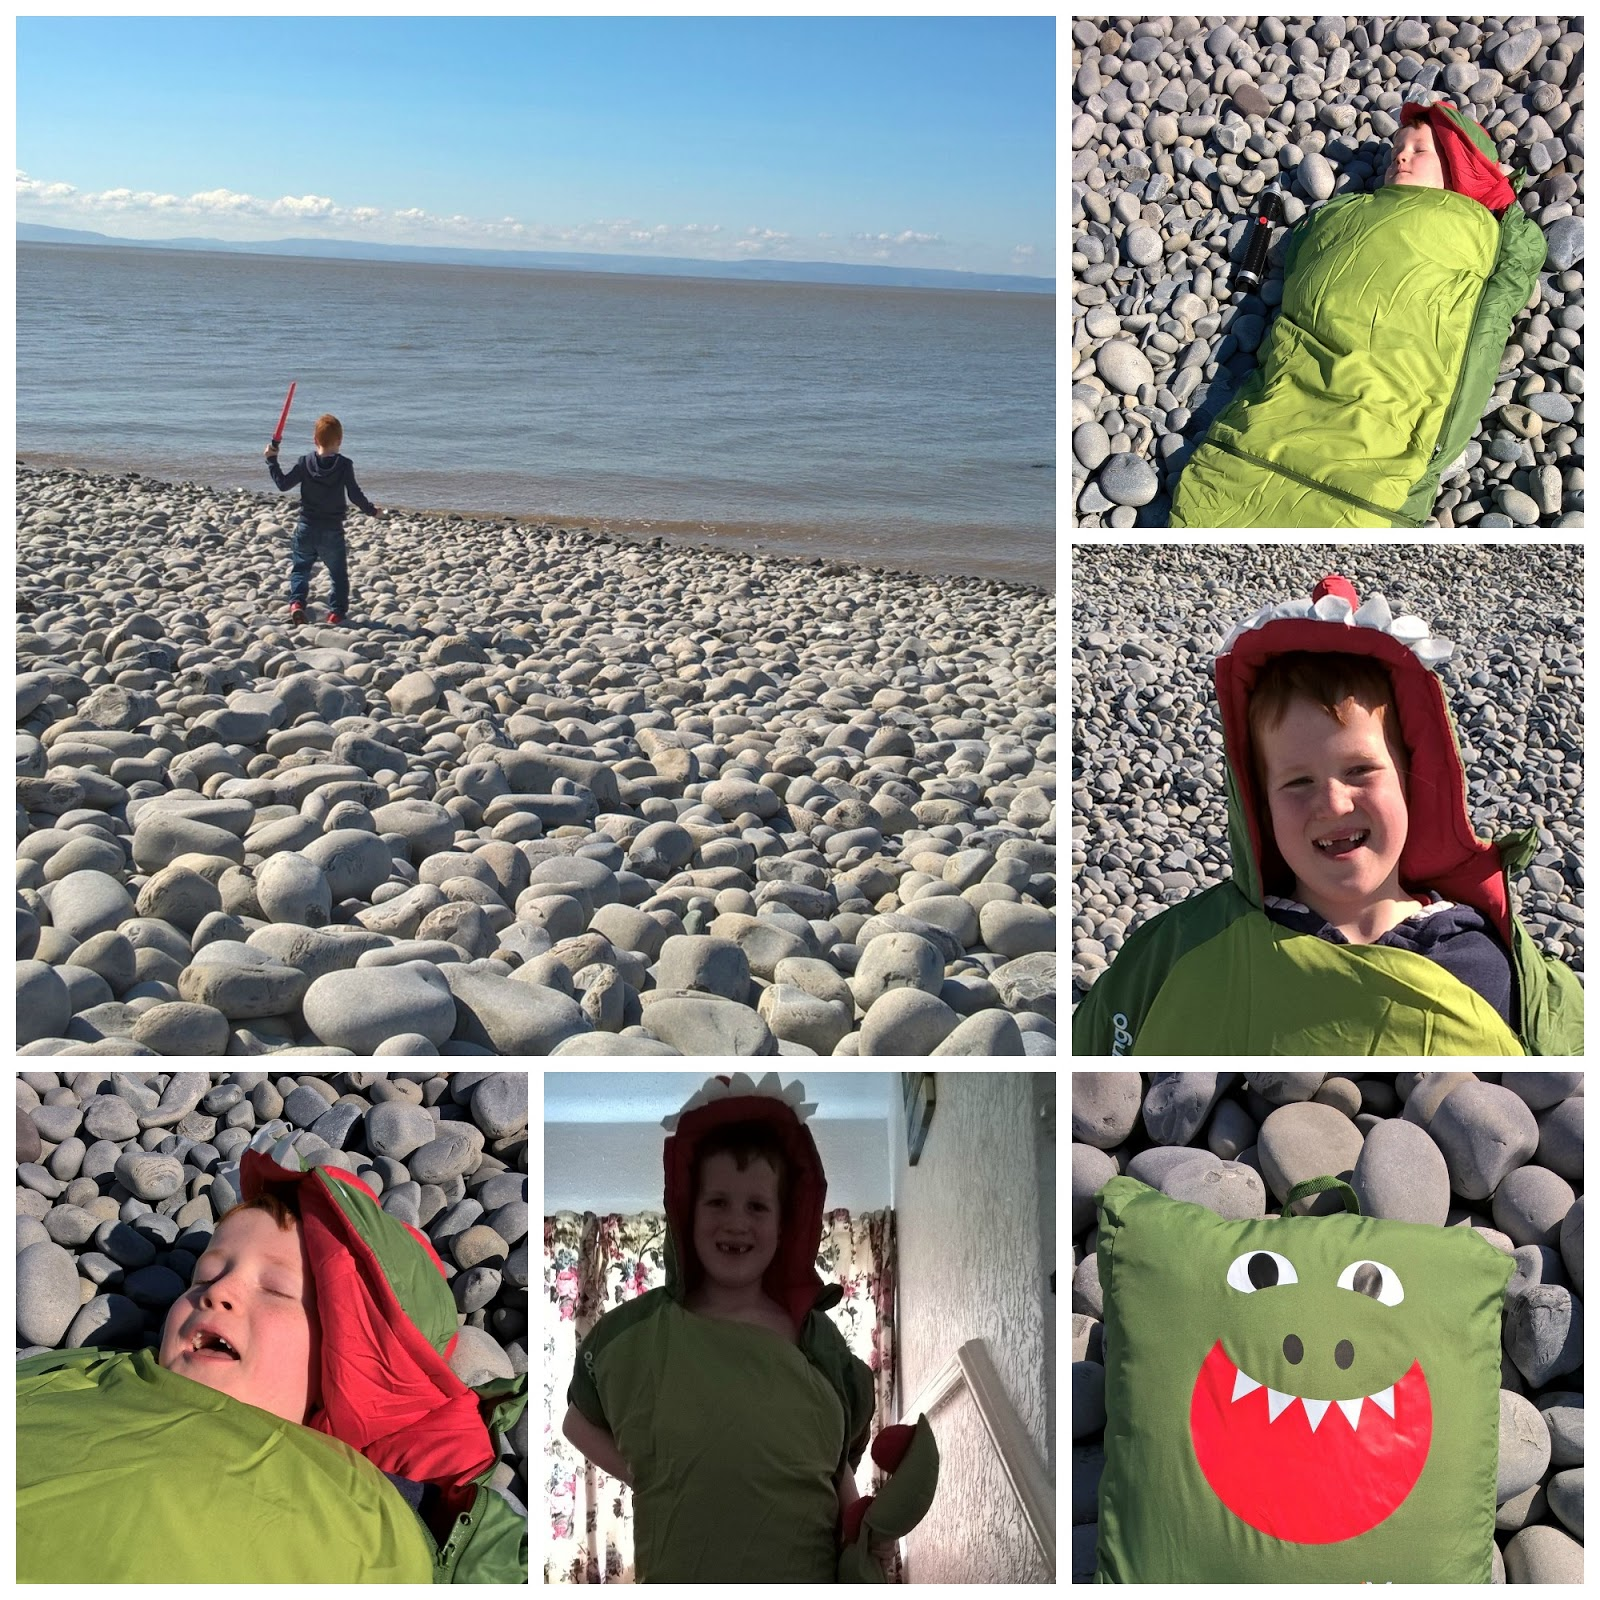 The Vango Starwalker Junior Is A Versatile Sleeping Bag Which Gives Children Freedom Of Movement With Option To Zip Off Sections At Legs And